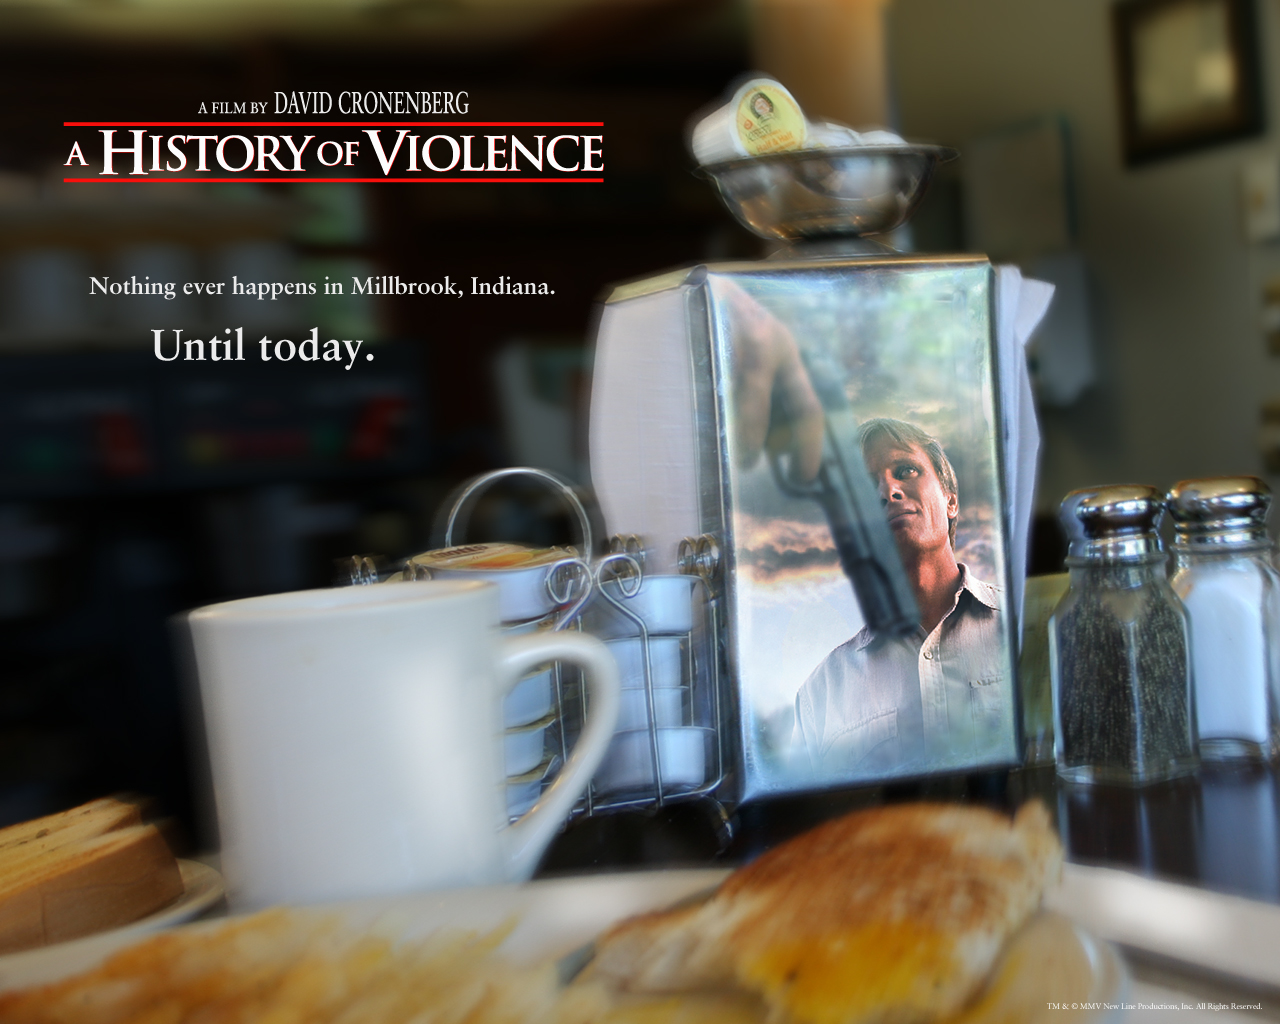 history of violence Tom stall is living a happy and quiet life with his lawyer wife and their two children in the small town of millbrook, indiana, but one night their idyllic existence is shattered when tom foils a vicious attempted robbery in his diner sensing danger, he takes action and saves his customers and friends in the self-defense killings of two-sought-after.